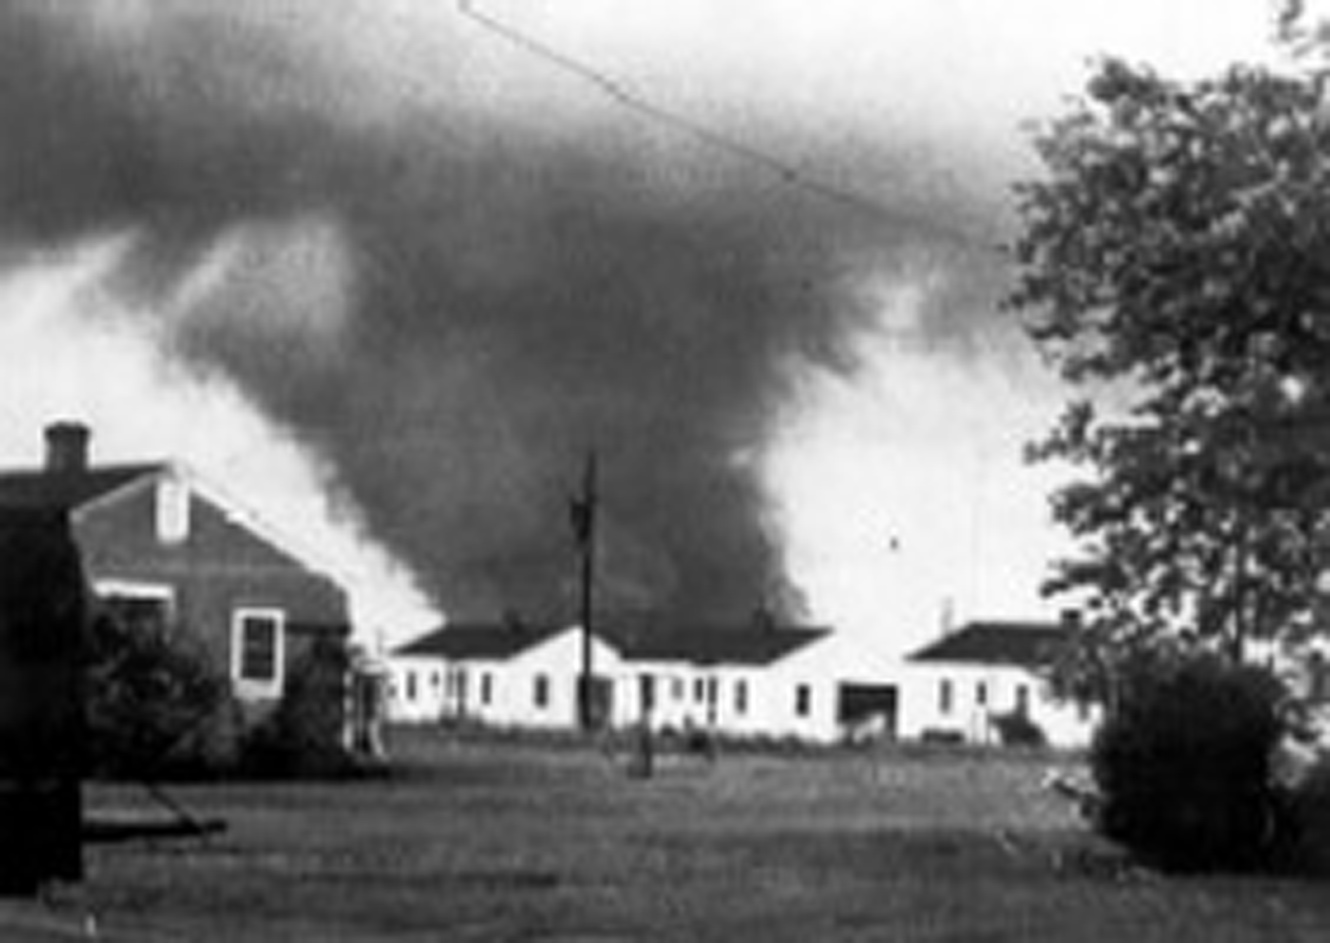 A tornado strikes Middle Georgia and Robins Air Force Base, April 30, 1953.